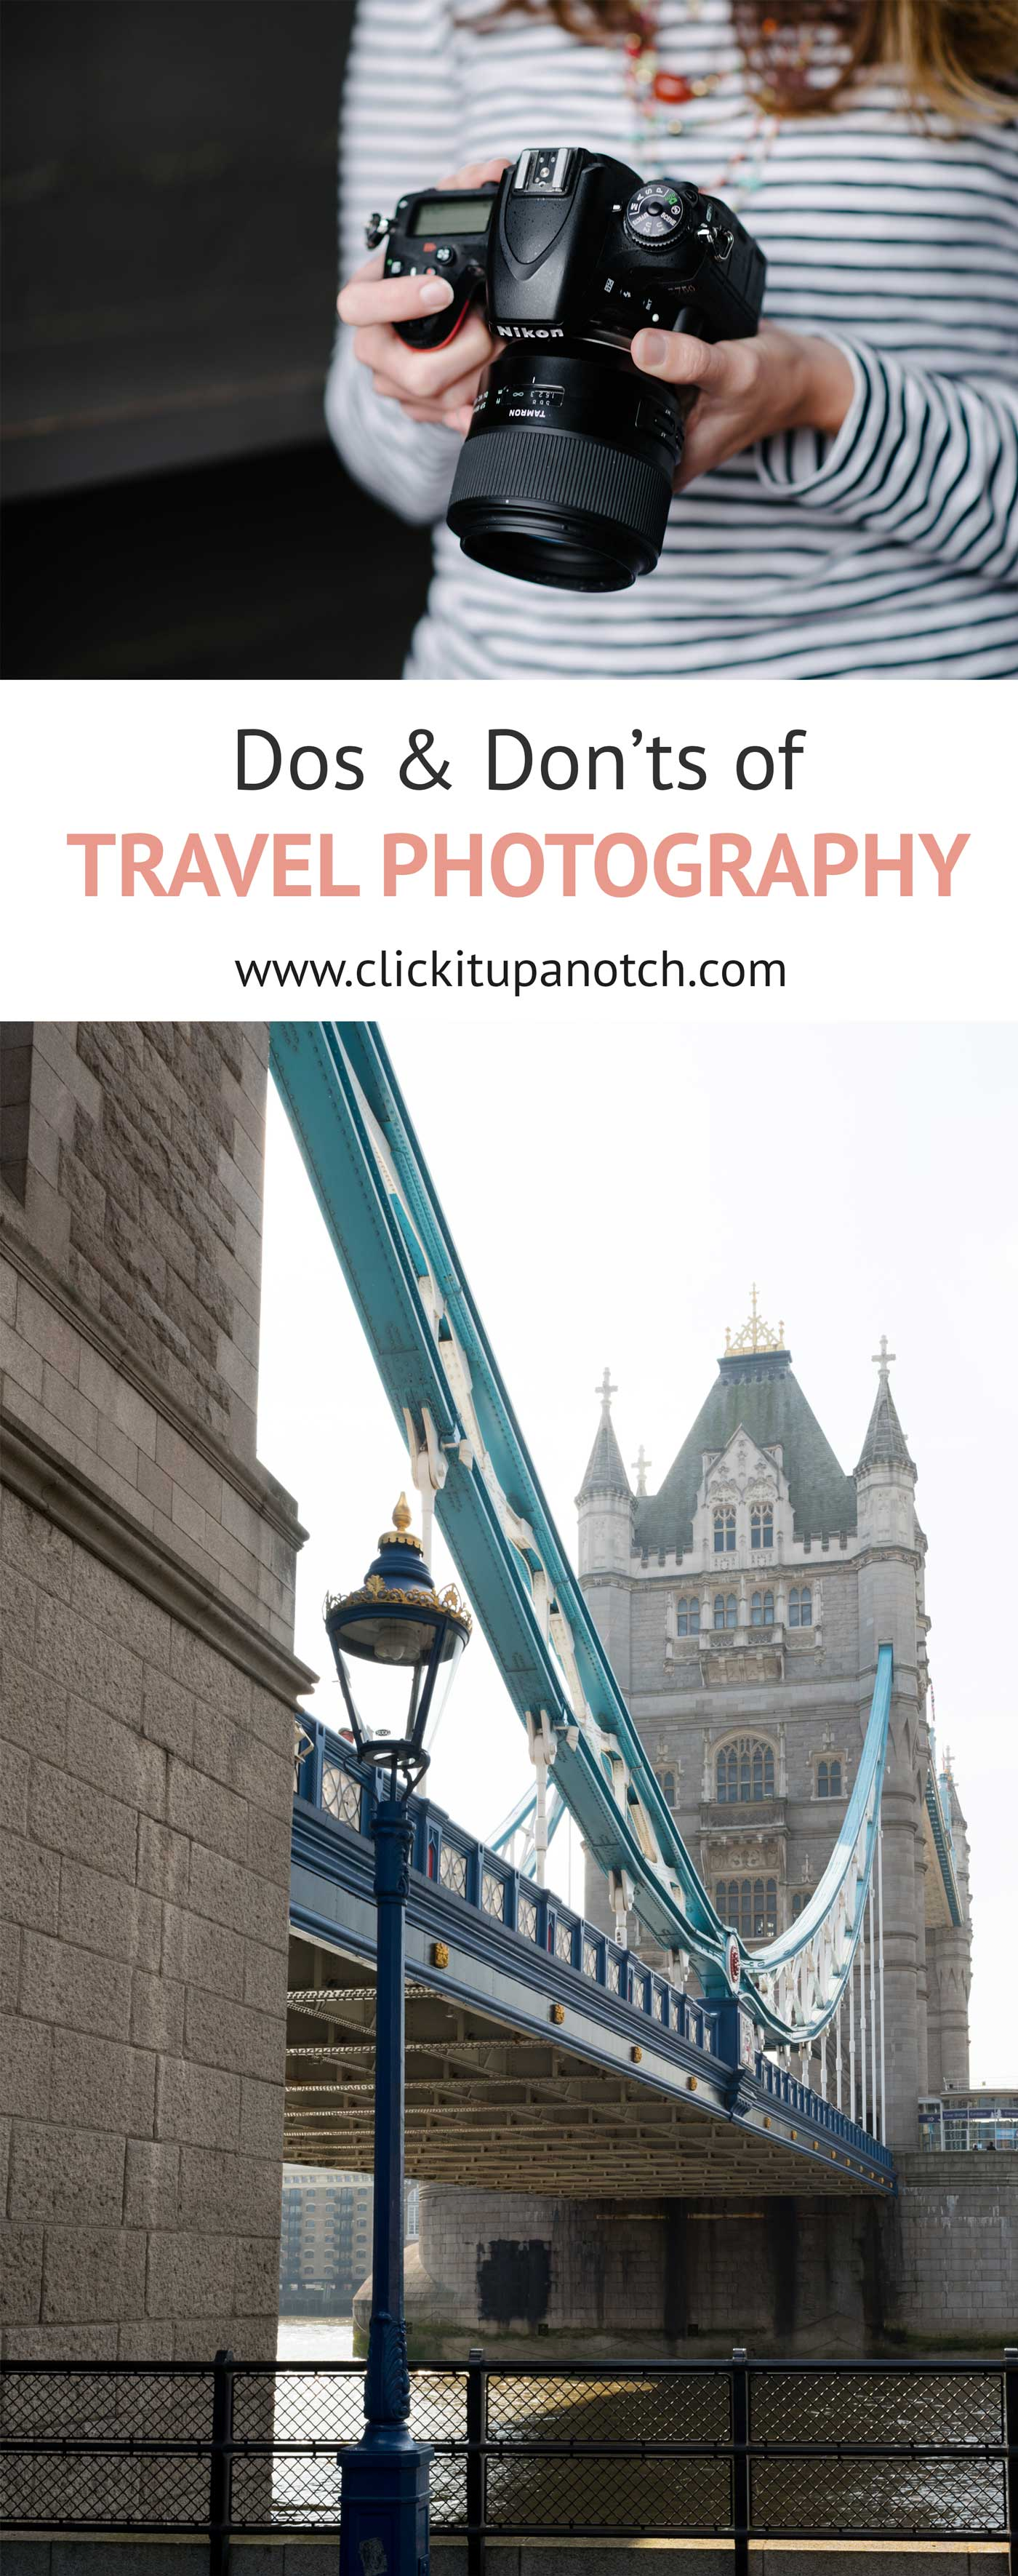 Dos and Don'ts of Travel Photography - A must read for anyone interested in taking pictures while traveling Europe